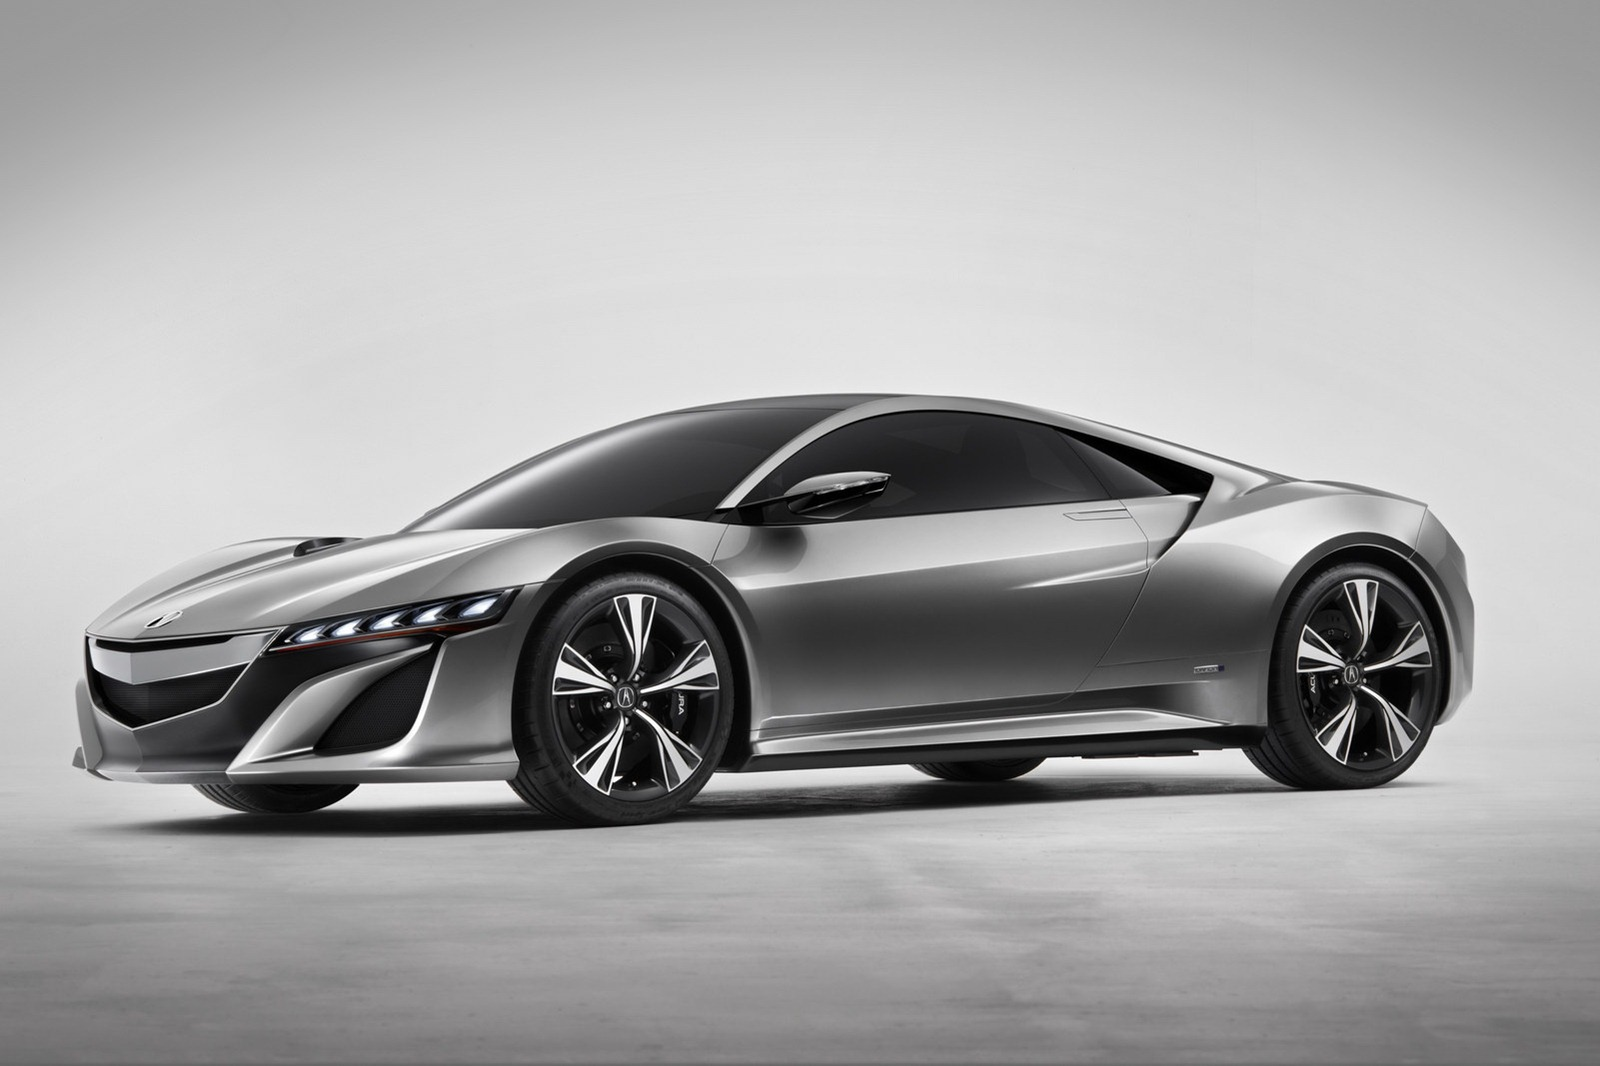 New Acura NSX Wallpaper For Phone